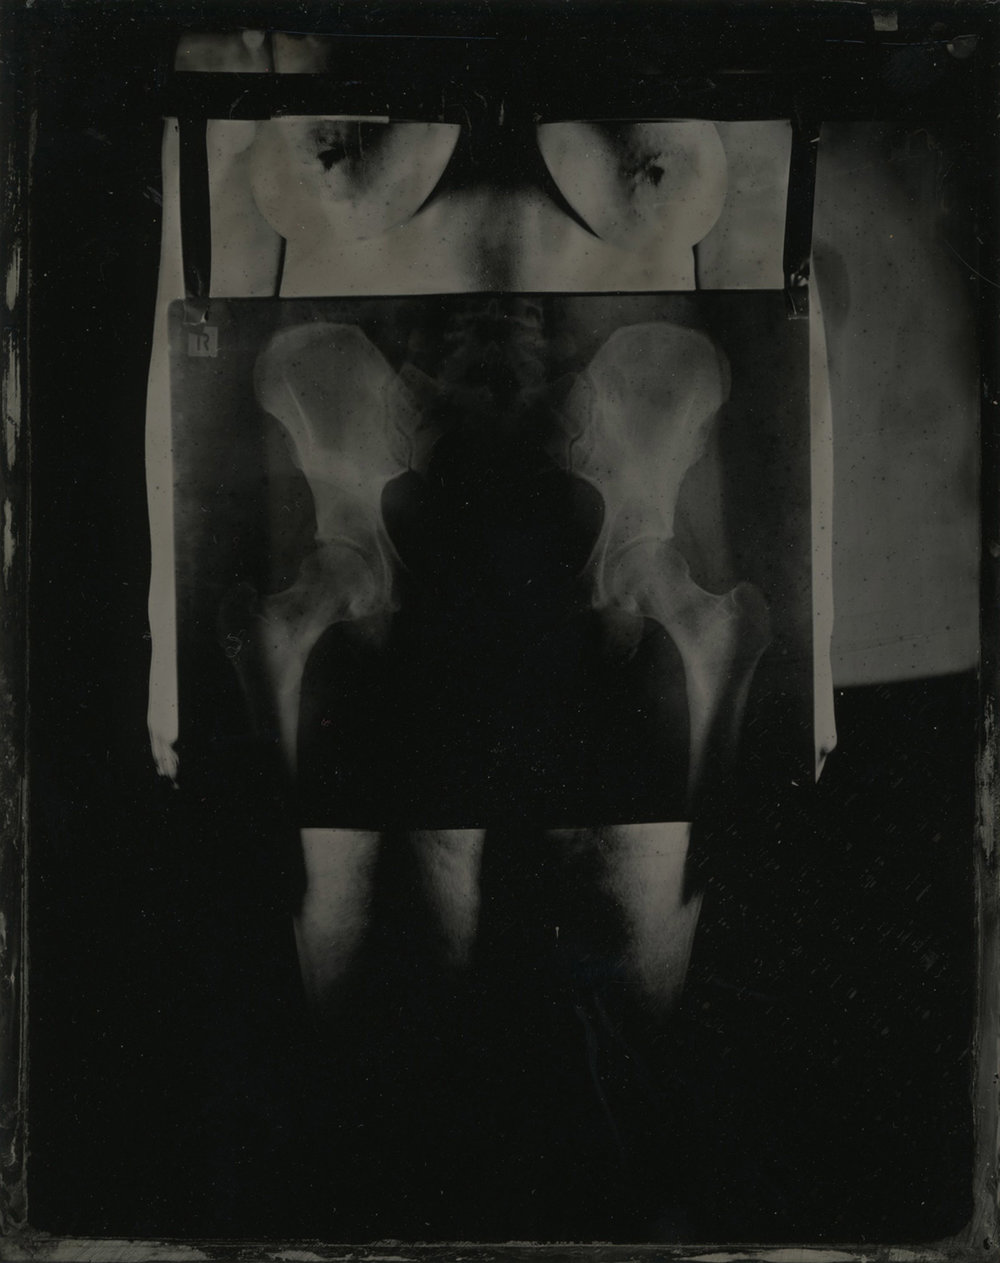 Title : Pelvis   By:  Keira Hudson    https://keirahudson.weebly.com/